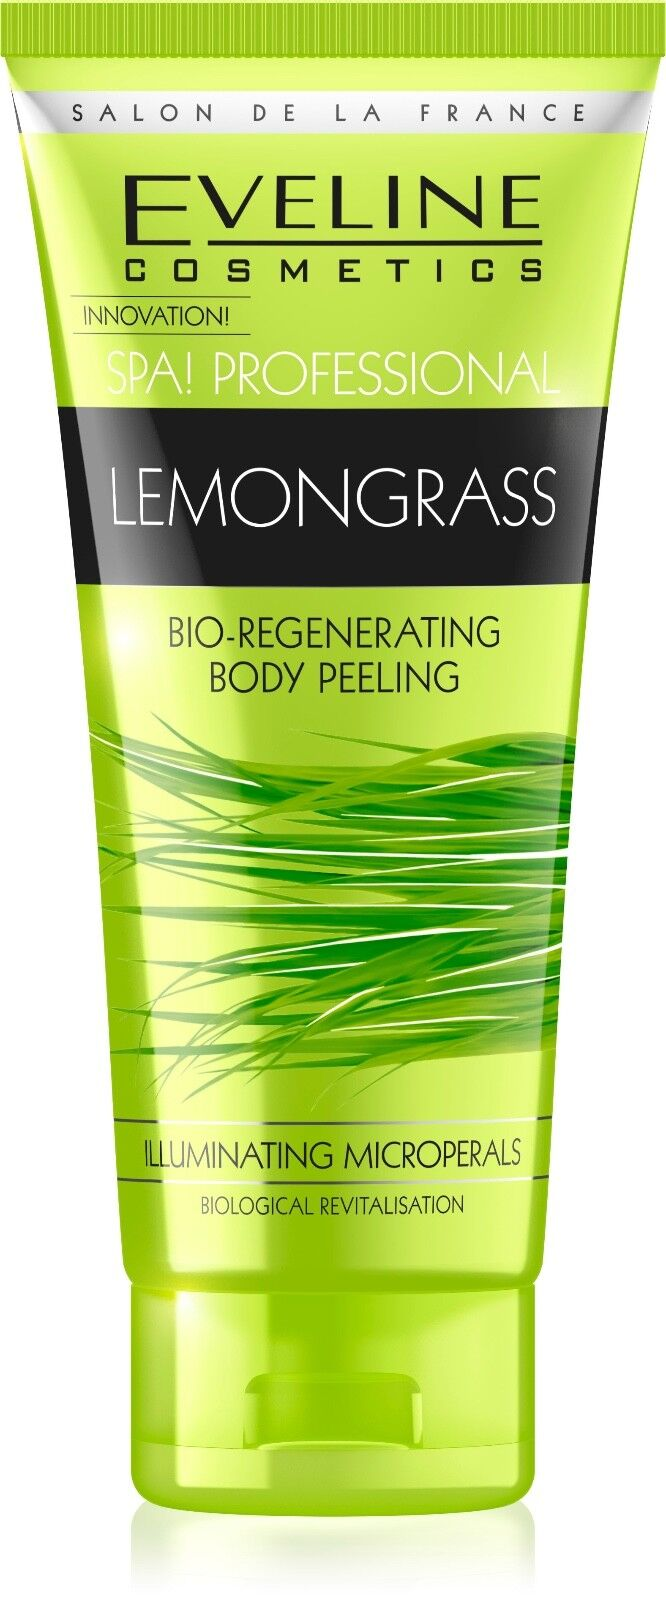 Eveline Cosmetics Spa Professional LEMONGRASS Body Peeling System Bath & Body